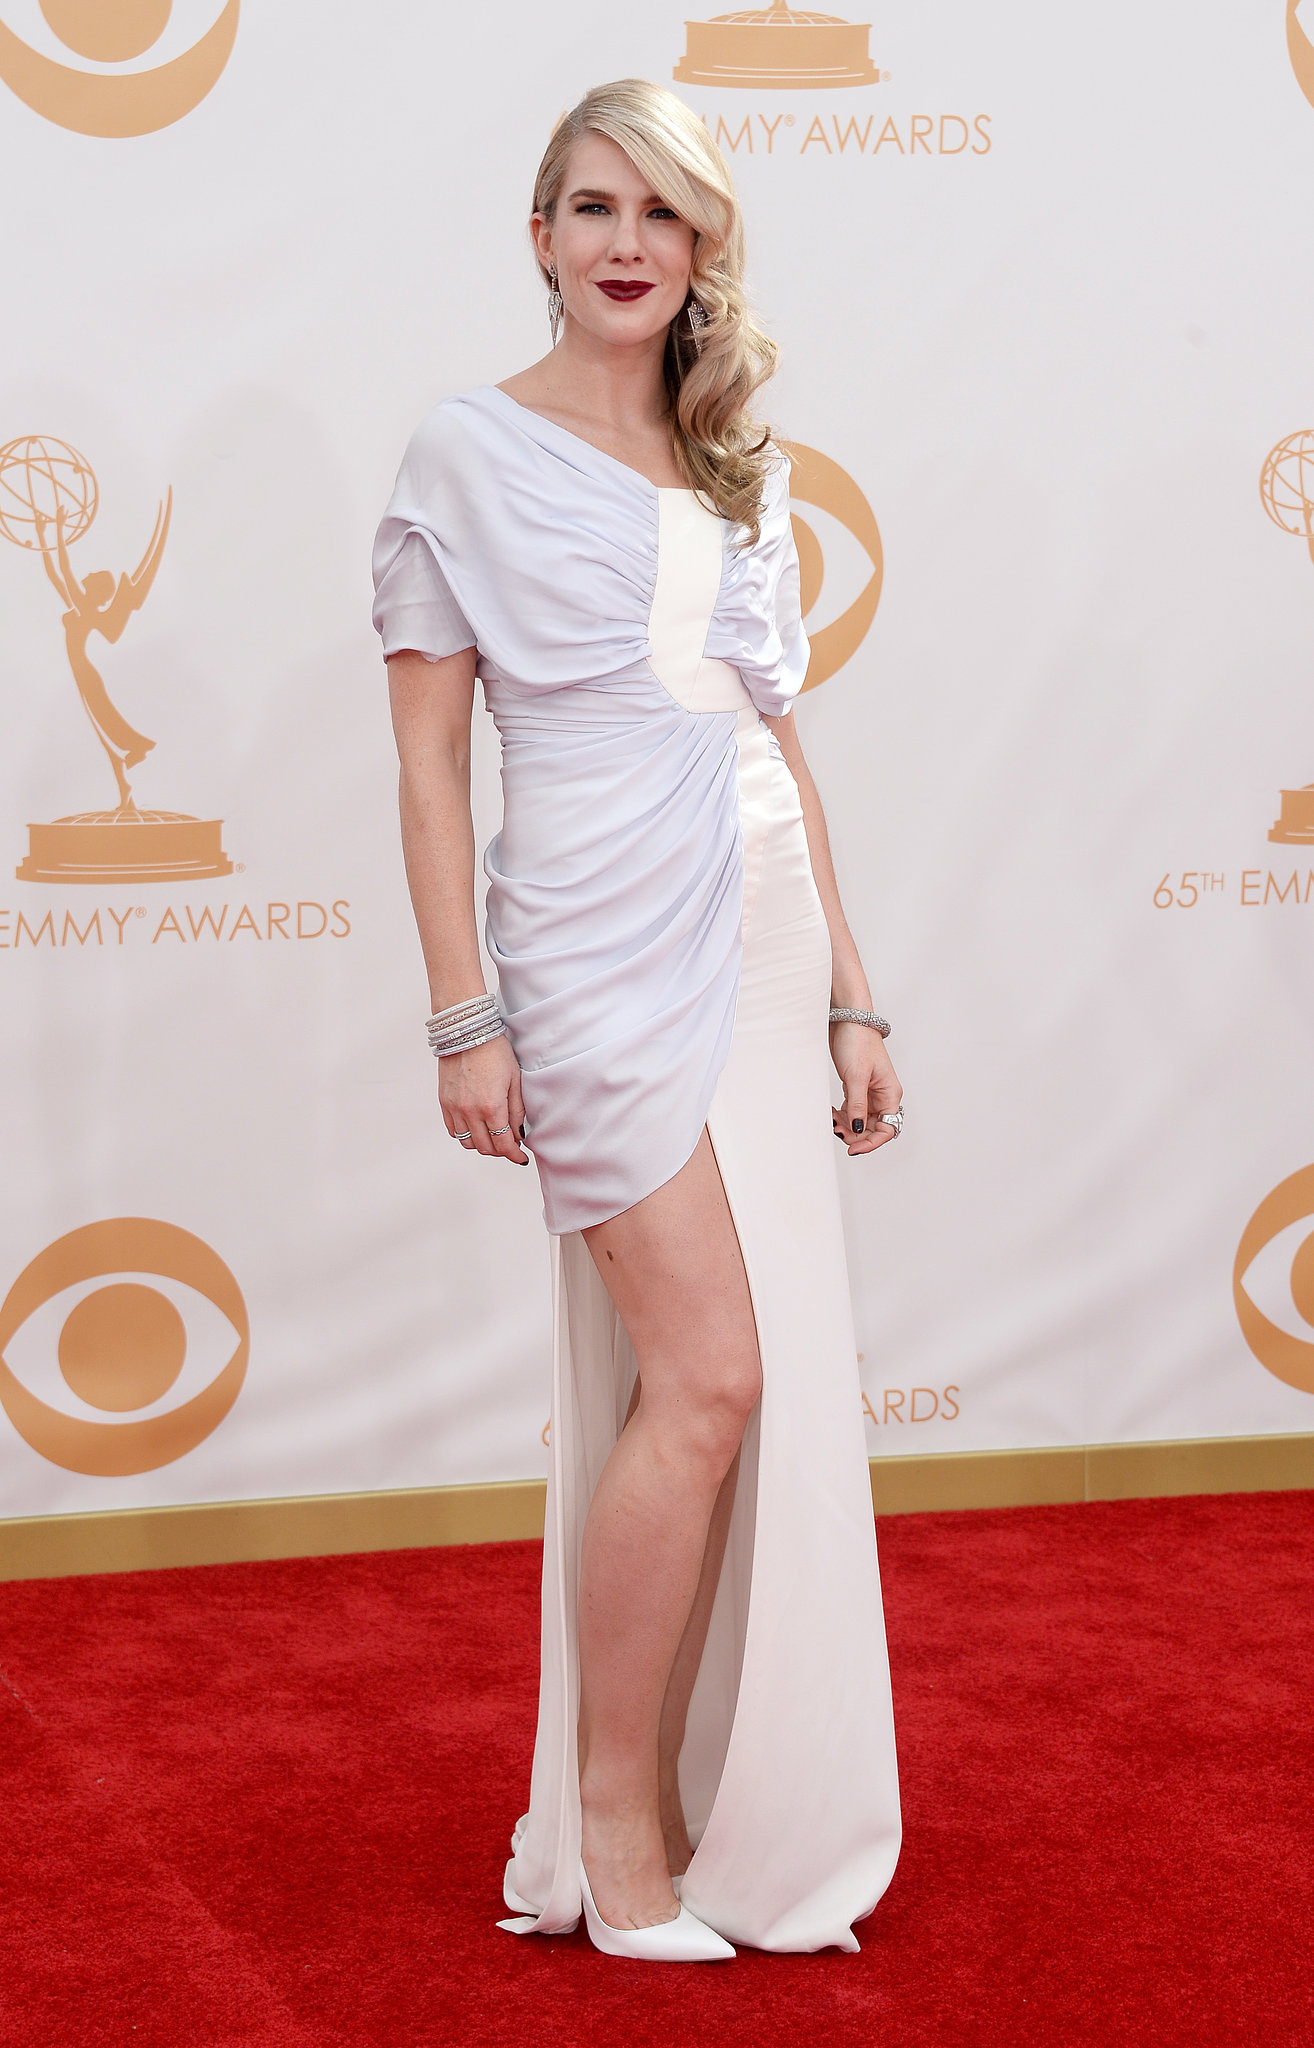 Lily Rabe showed a little leg at the Emmys.